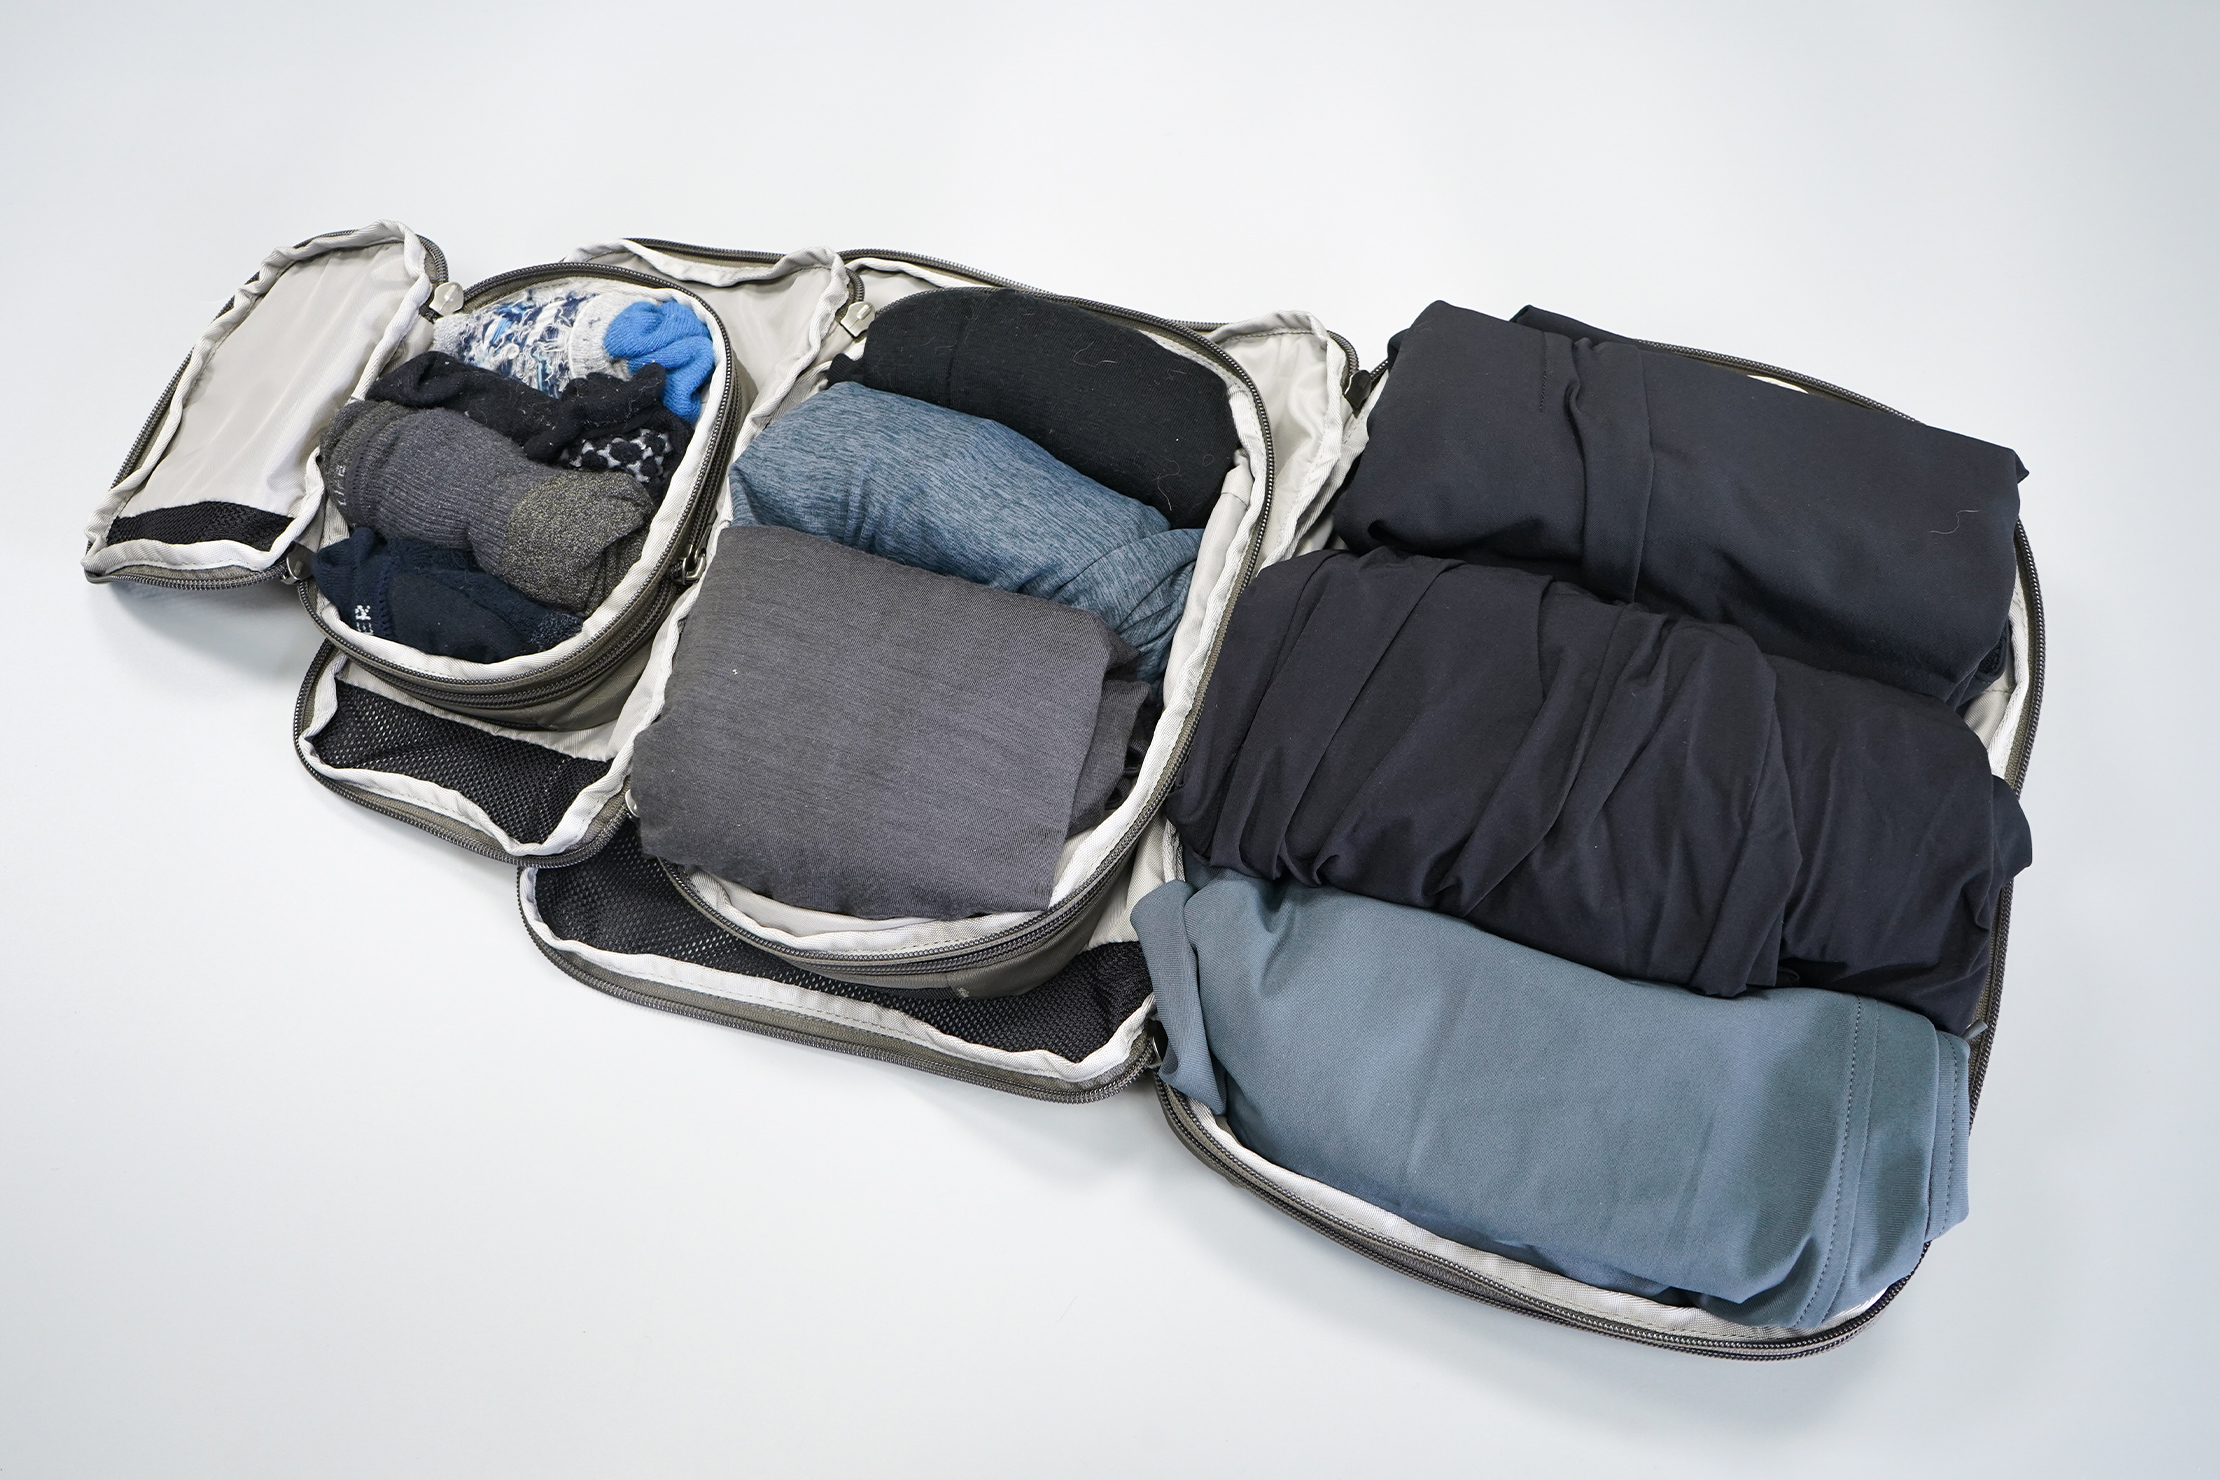 YETI Crossroads Packing Cubes   Packing Time